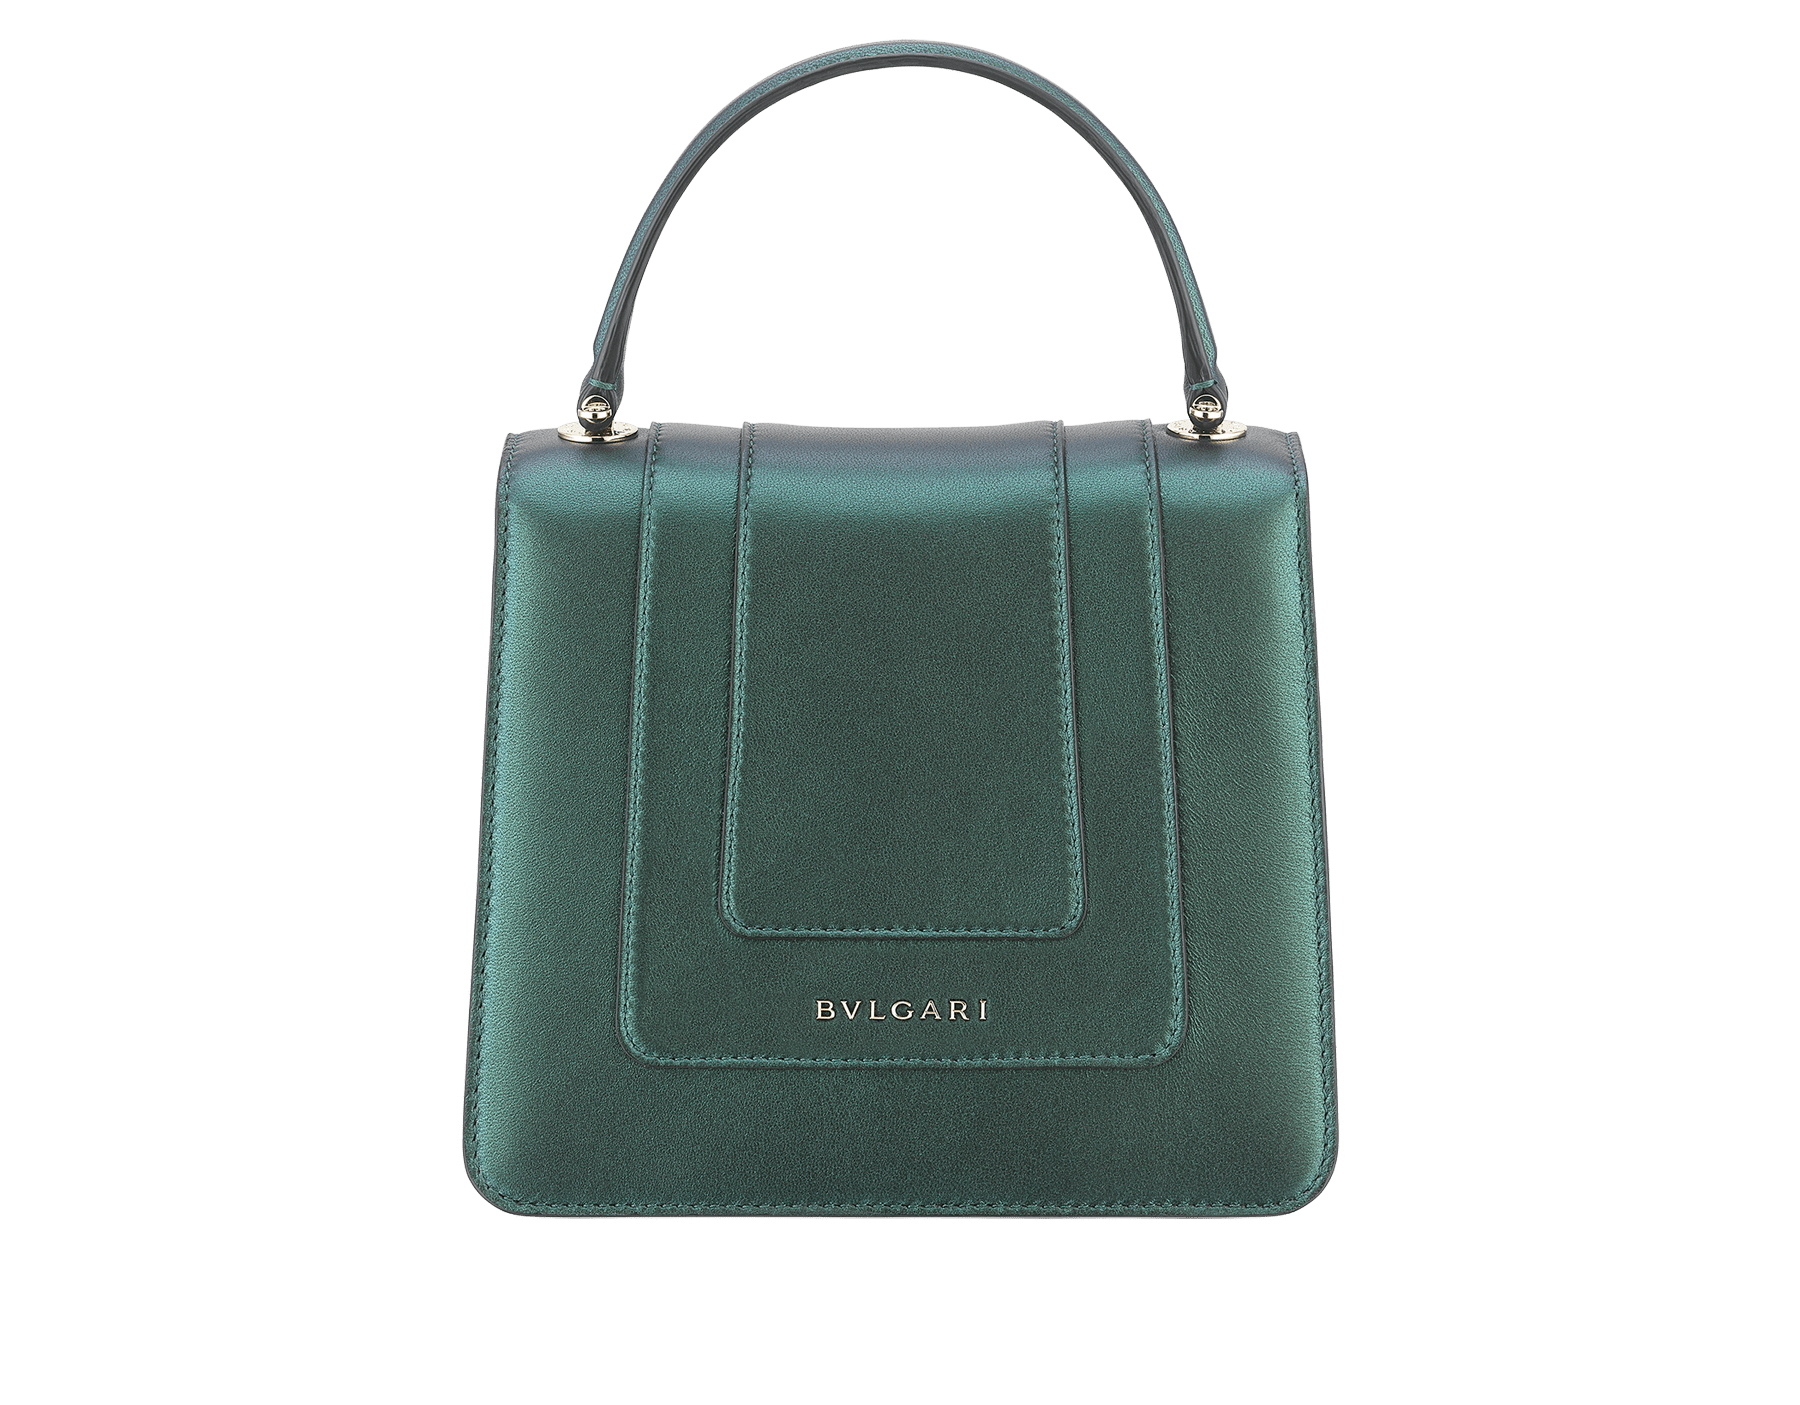 """Serpenti Forever "" crossbody bag in pearled emerald nappa leather. Iconic snakehead closure in light gold plated brass enriched with black and forest emerald enamel and green malachite eyes. Special Edition. 289837 image 3"